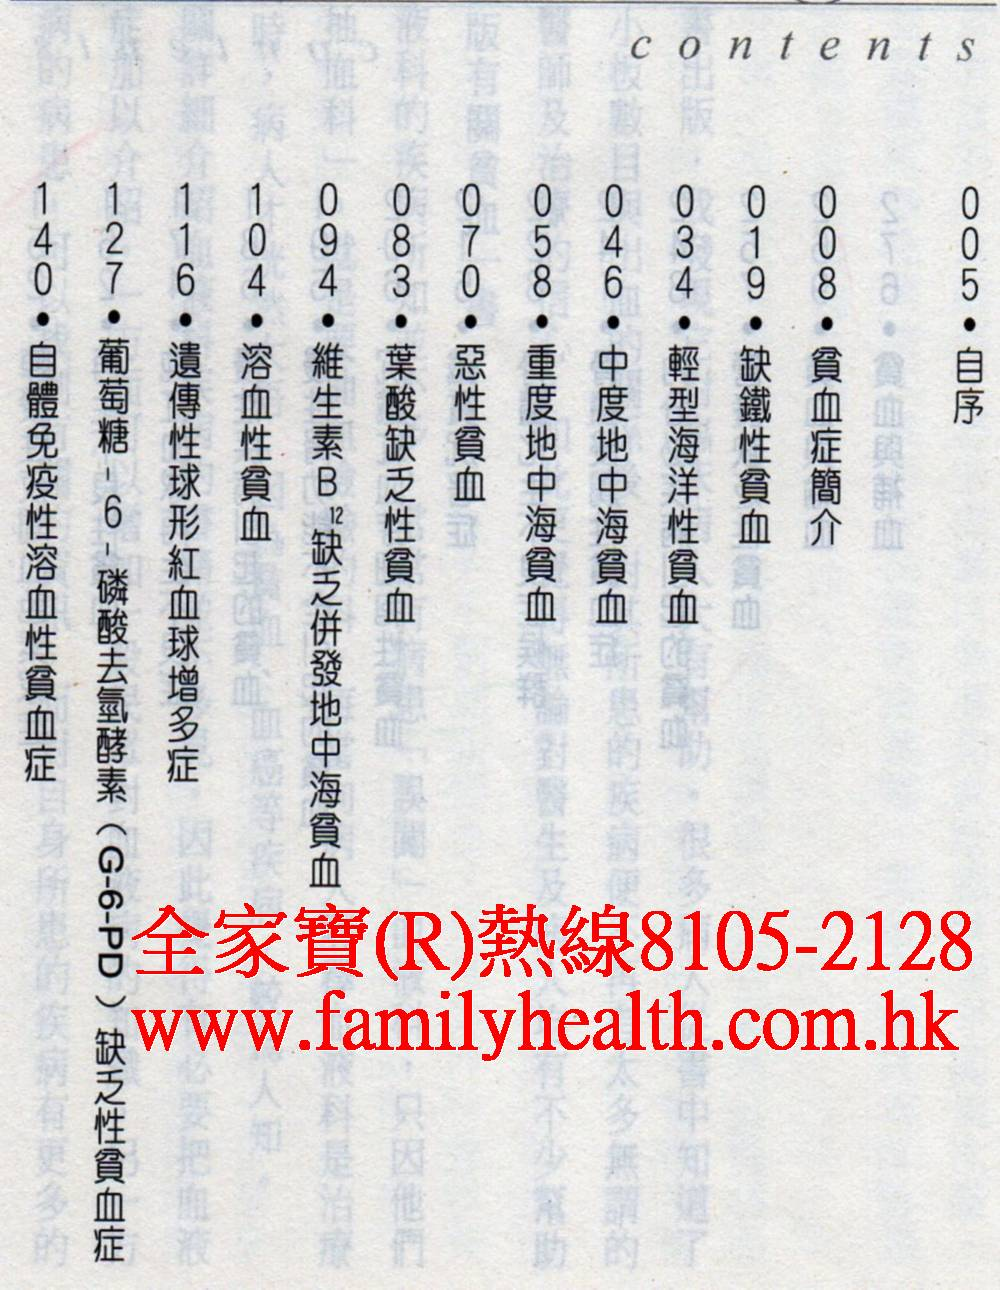 http://www.familyhealth.com.hk/files/full/458_1.jpg